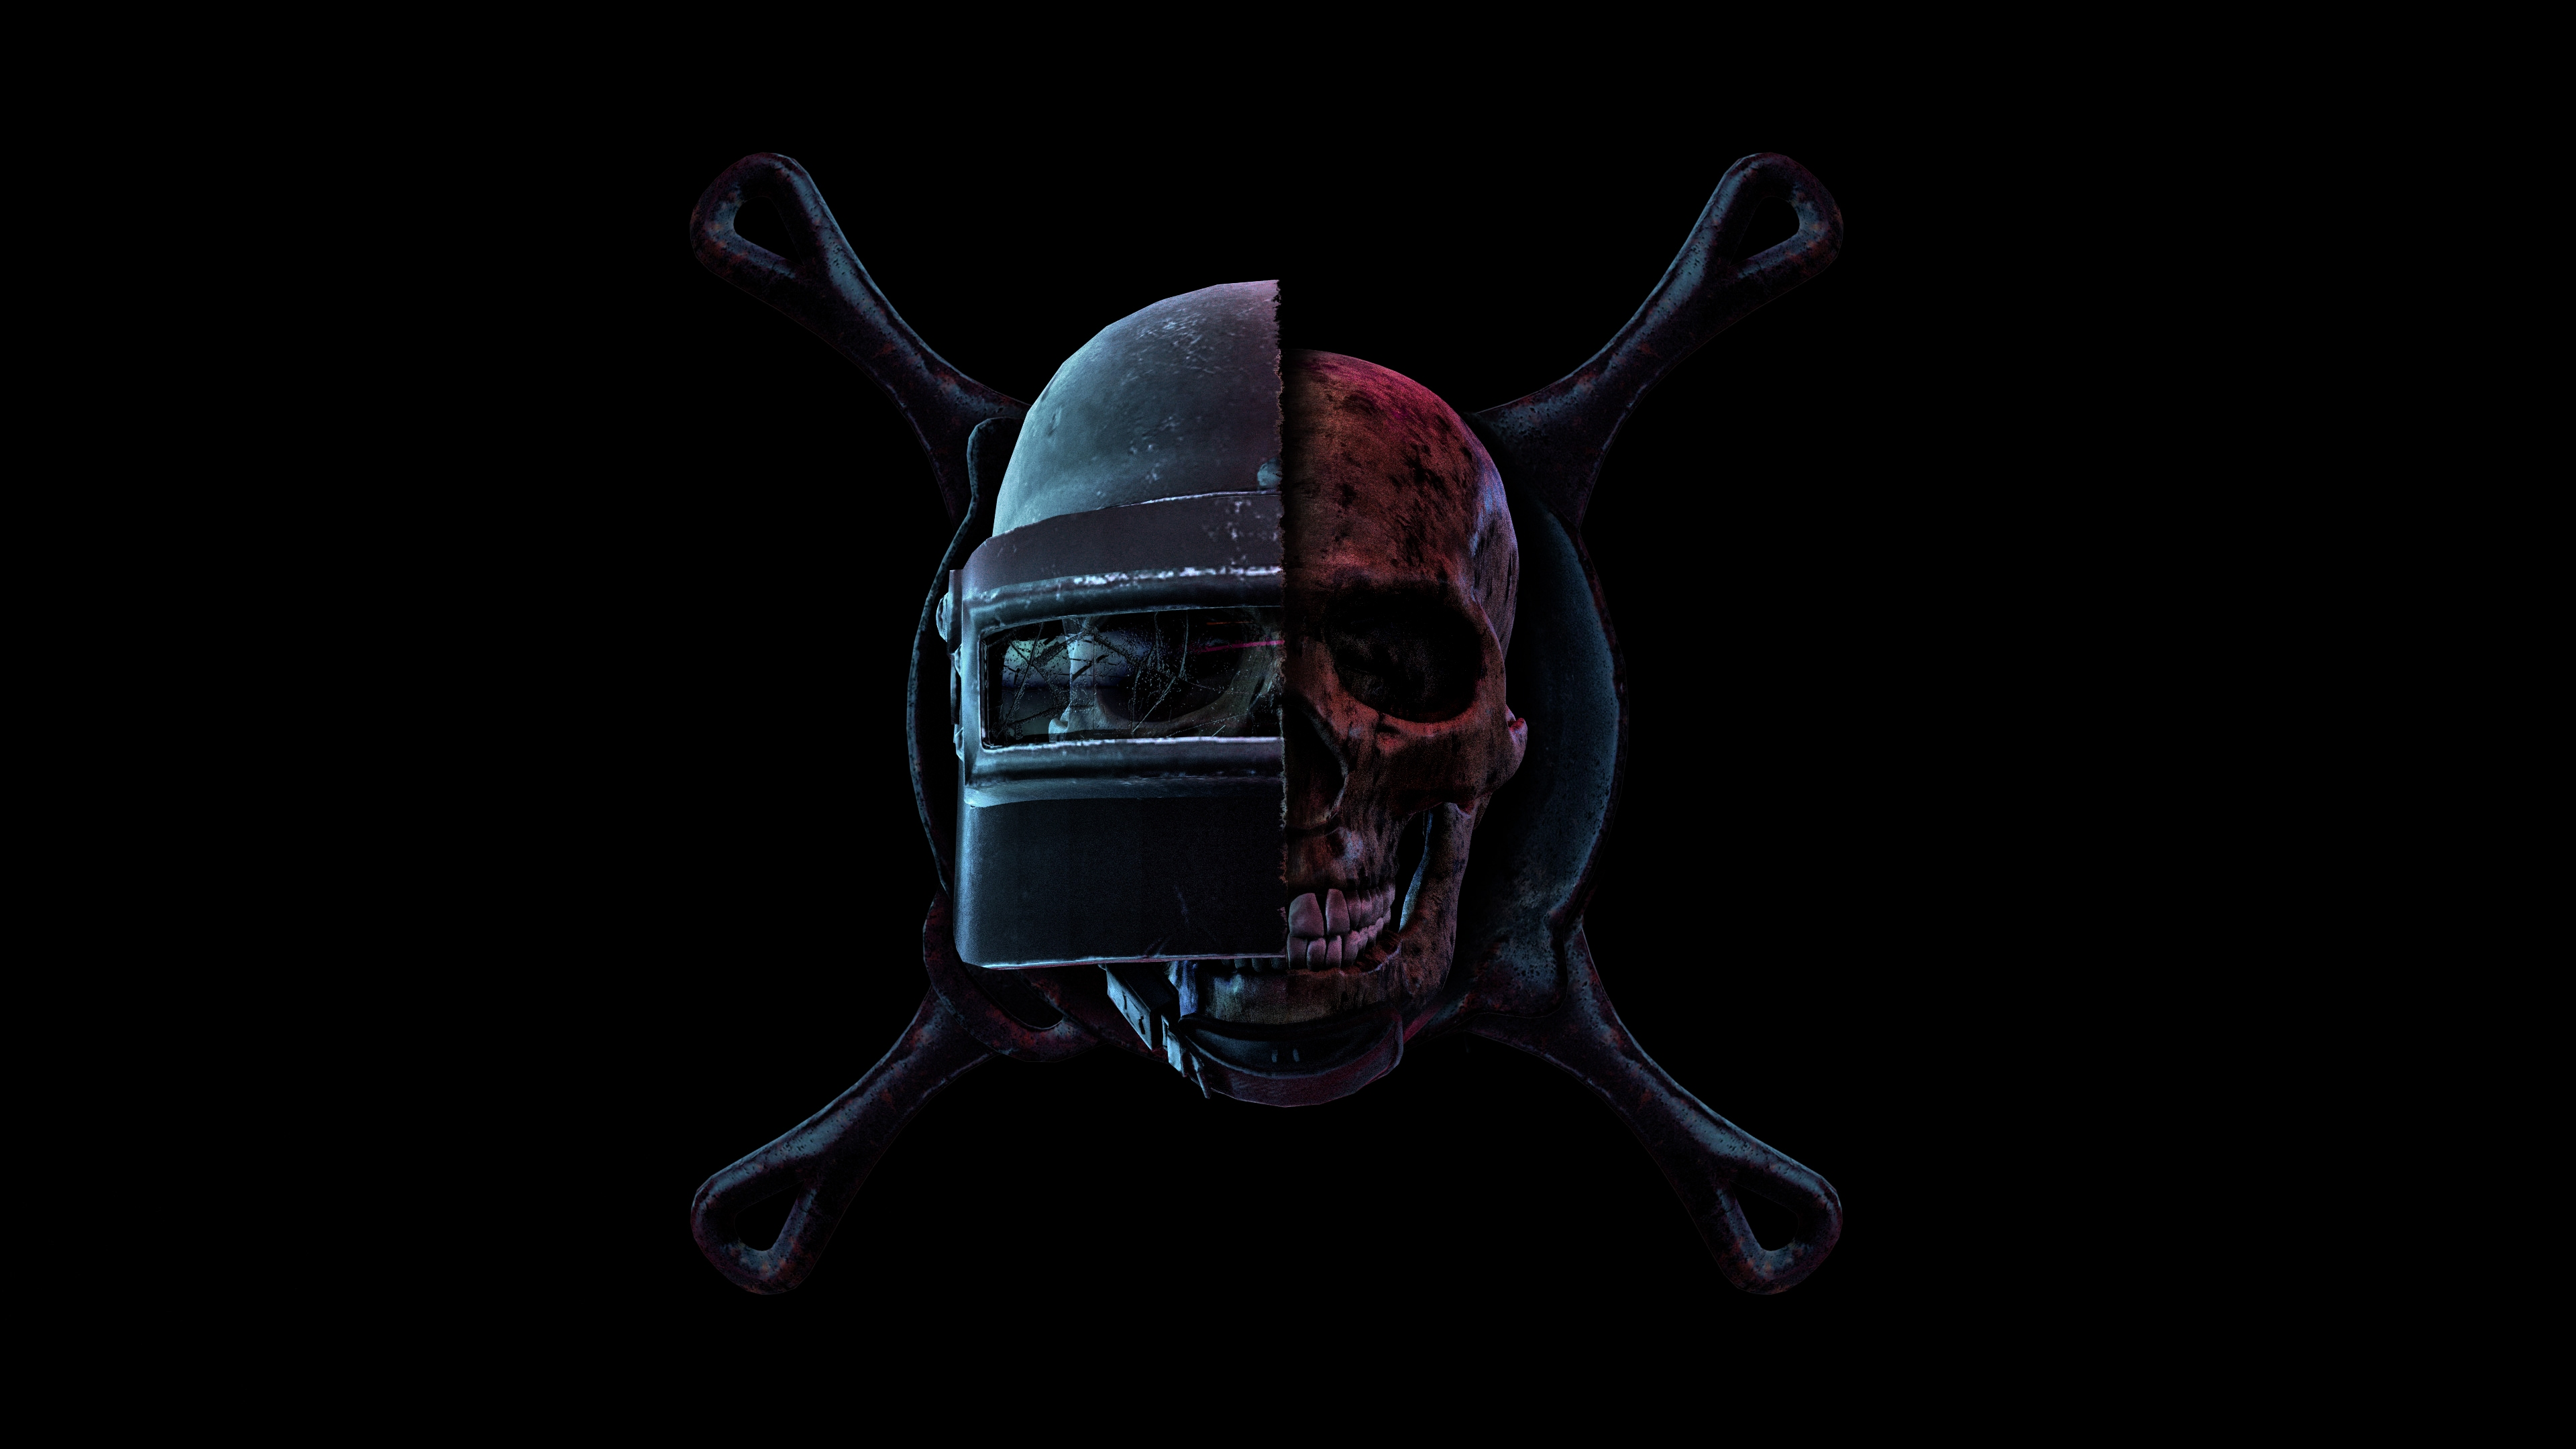 Wallpaper 4k Pubg Skull Helmet Pan Playerunknown S